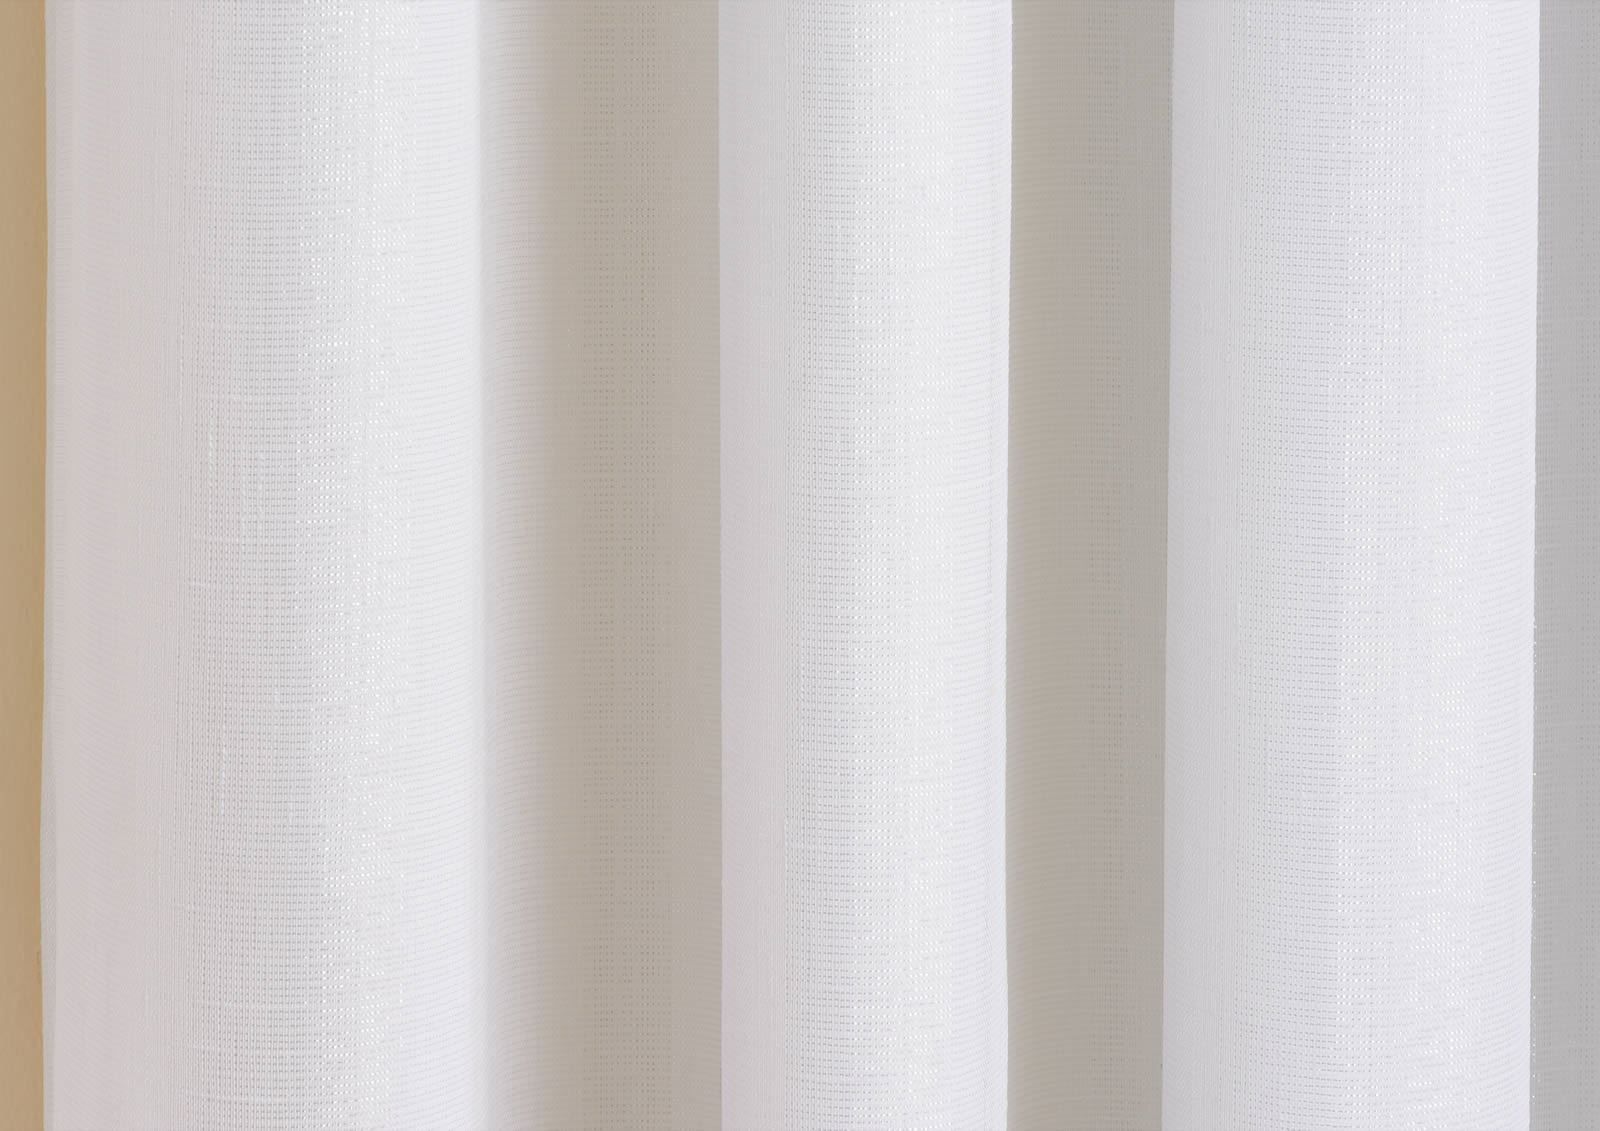 SANTIAGO EYELET CURTAINS SPARKLE LINED VOILES READY MADE